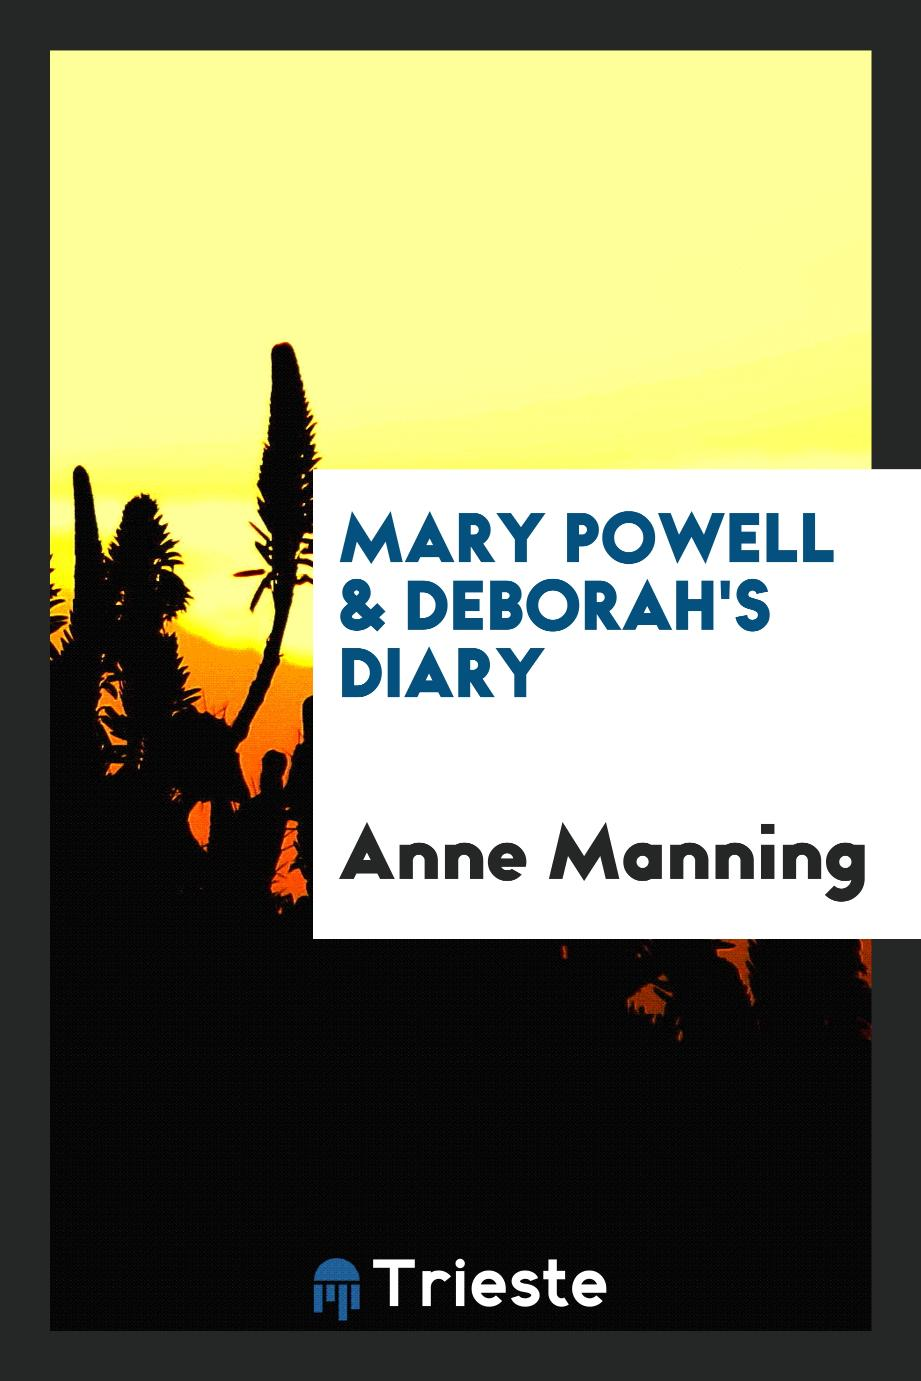 Mary Powell & Deborah's diary